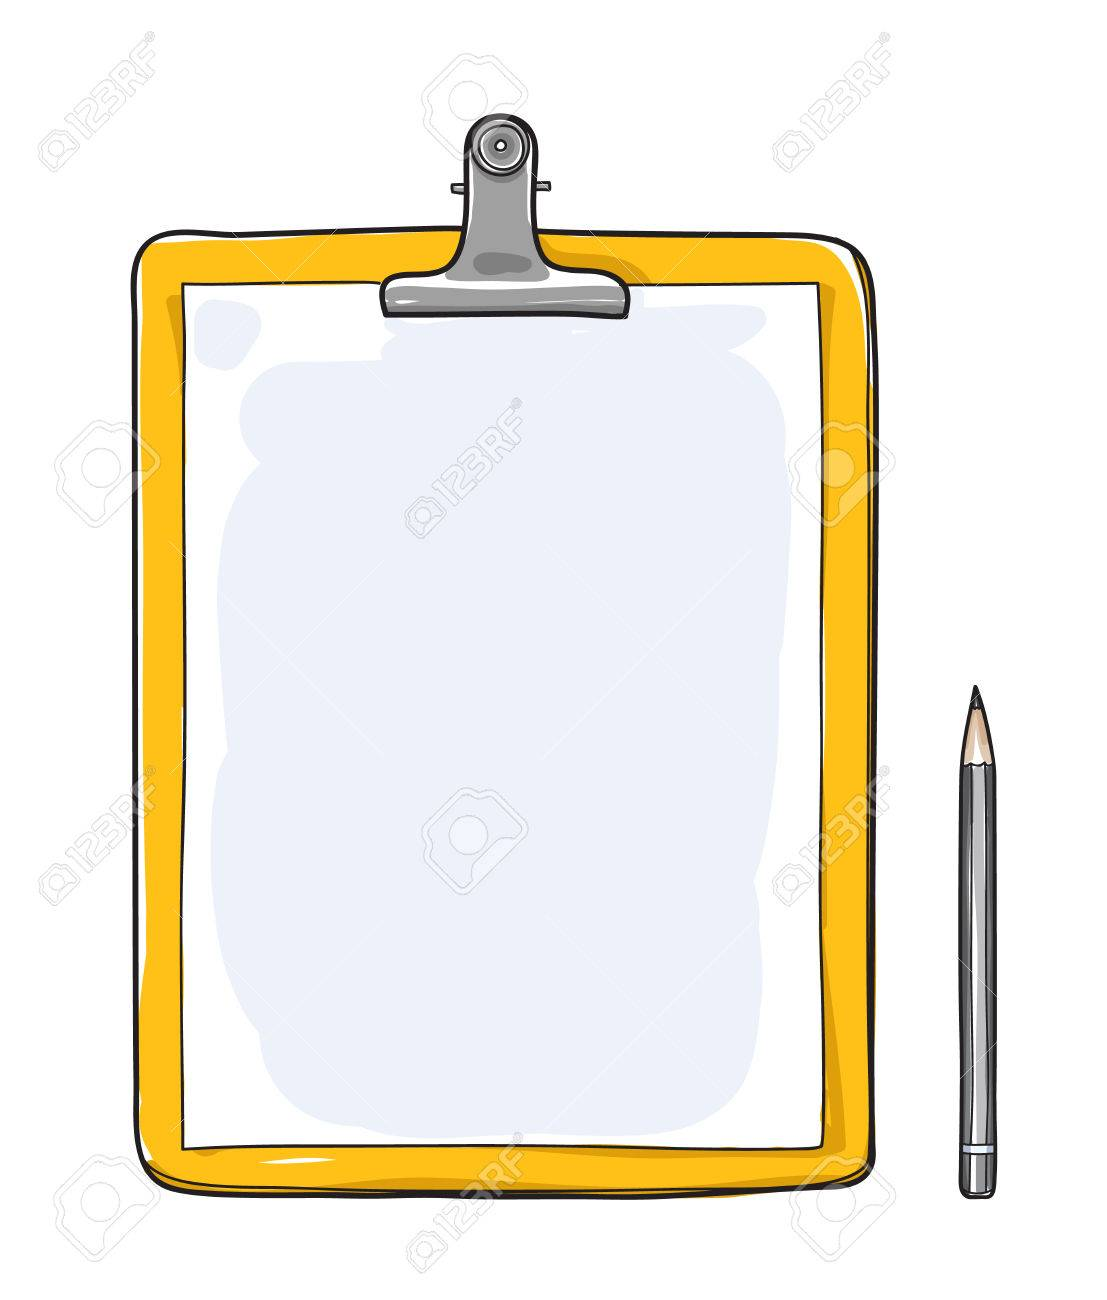 Yellow Clipboard with blank paper and a pencil hand drawn vector art illustration - 83768346